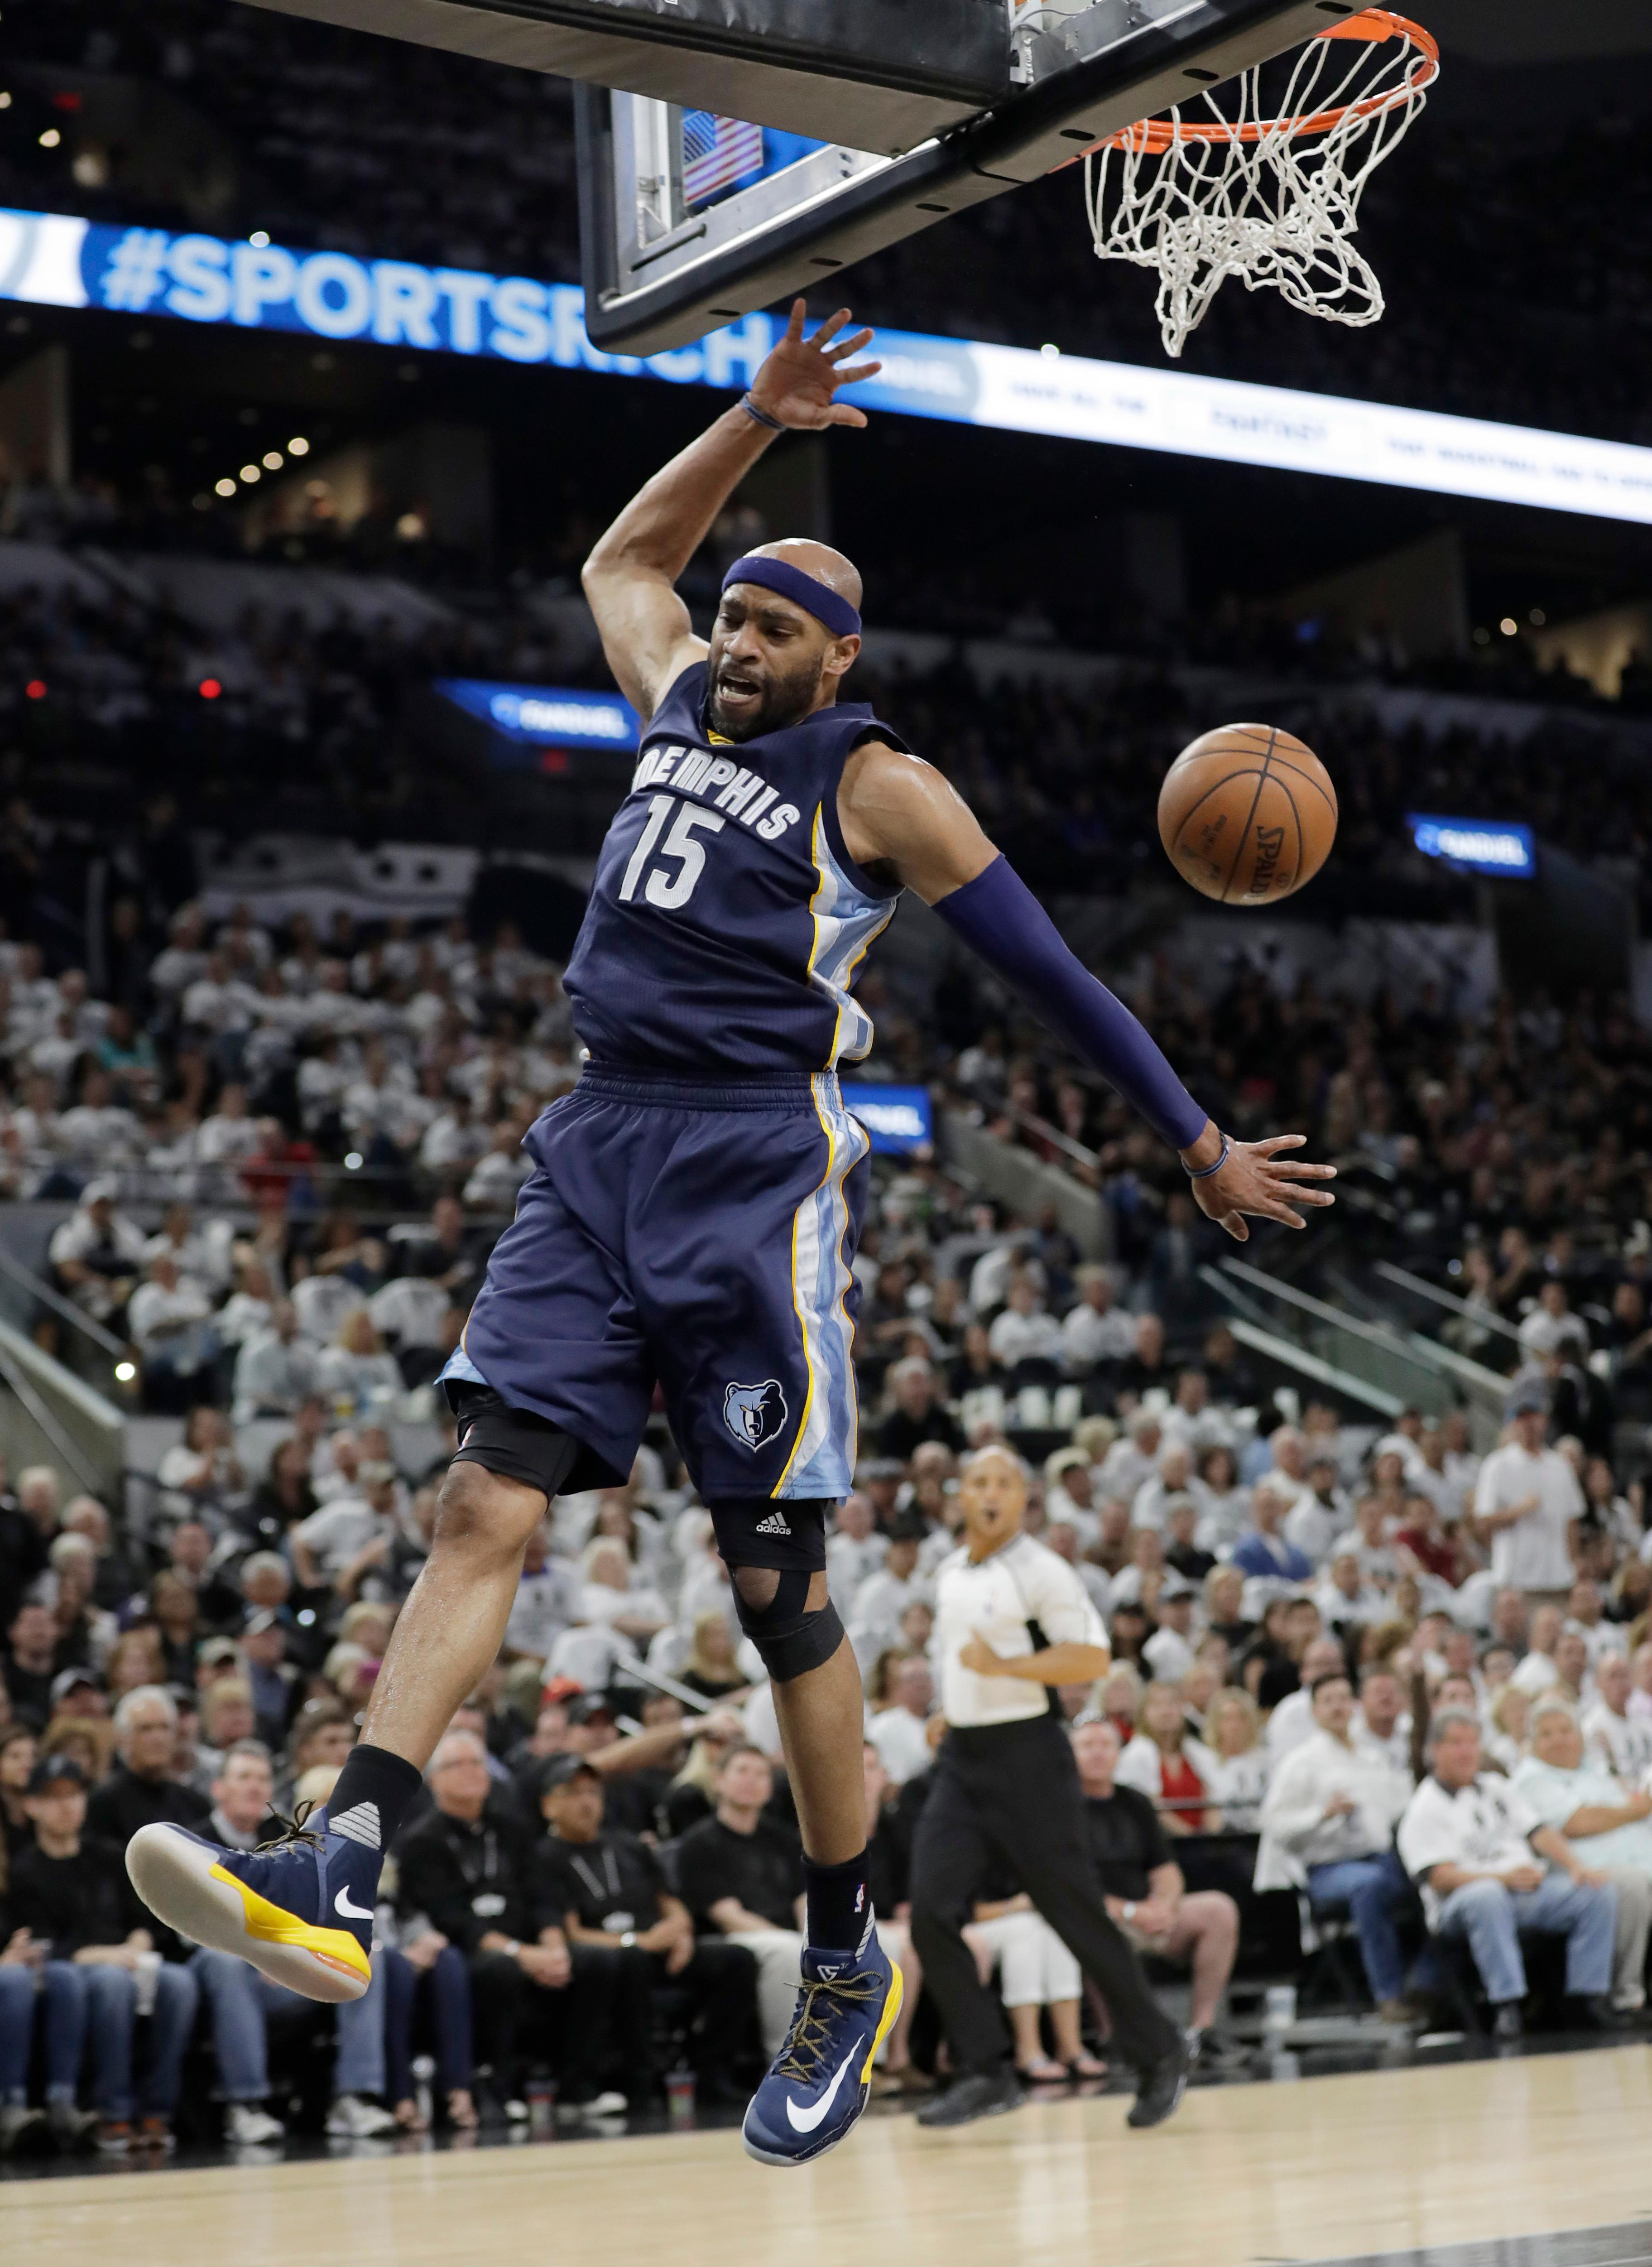 Memphis Grizzlies guard Vince Carter (15) scores against the San Antonio Spurs during Game 1 of a first-round NBA basketball playoff series, Saturday, April 15, 2017, in San Antonio. (AP Photo/Eric Gay)